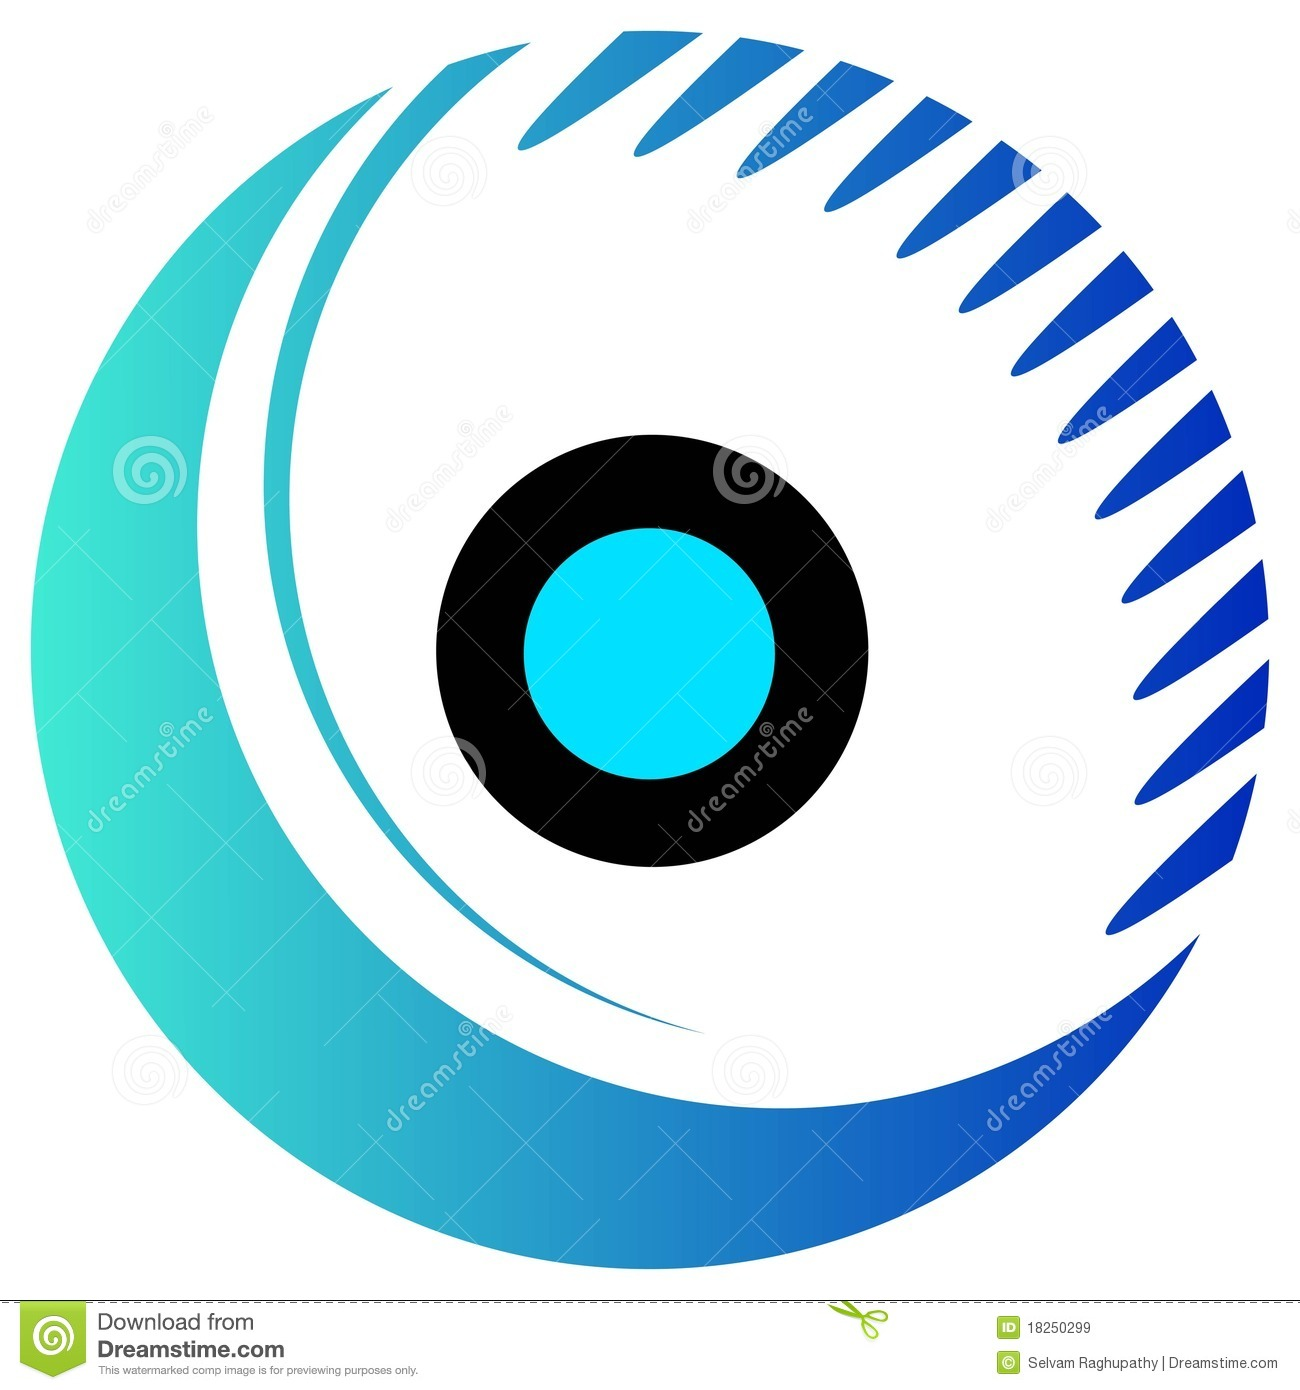 Eyeball clipart rolling eyes 'Eye can word(s) images you